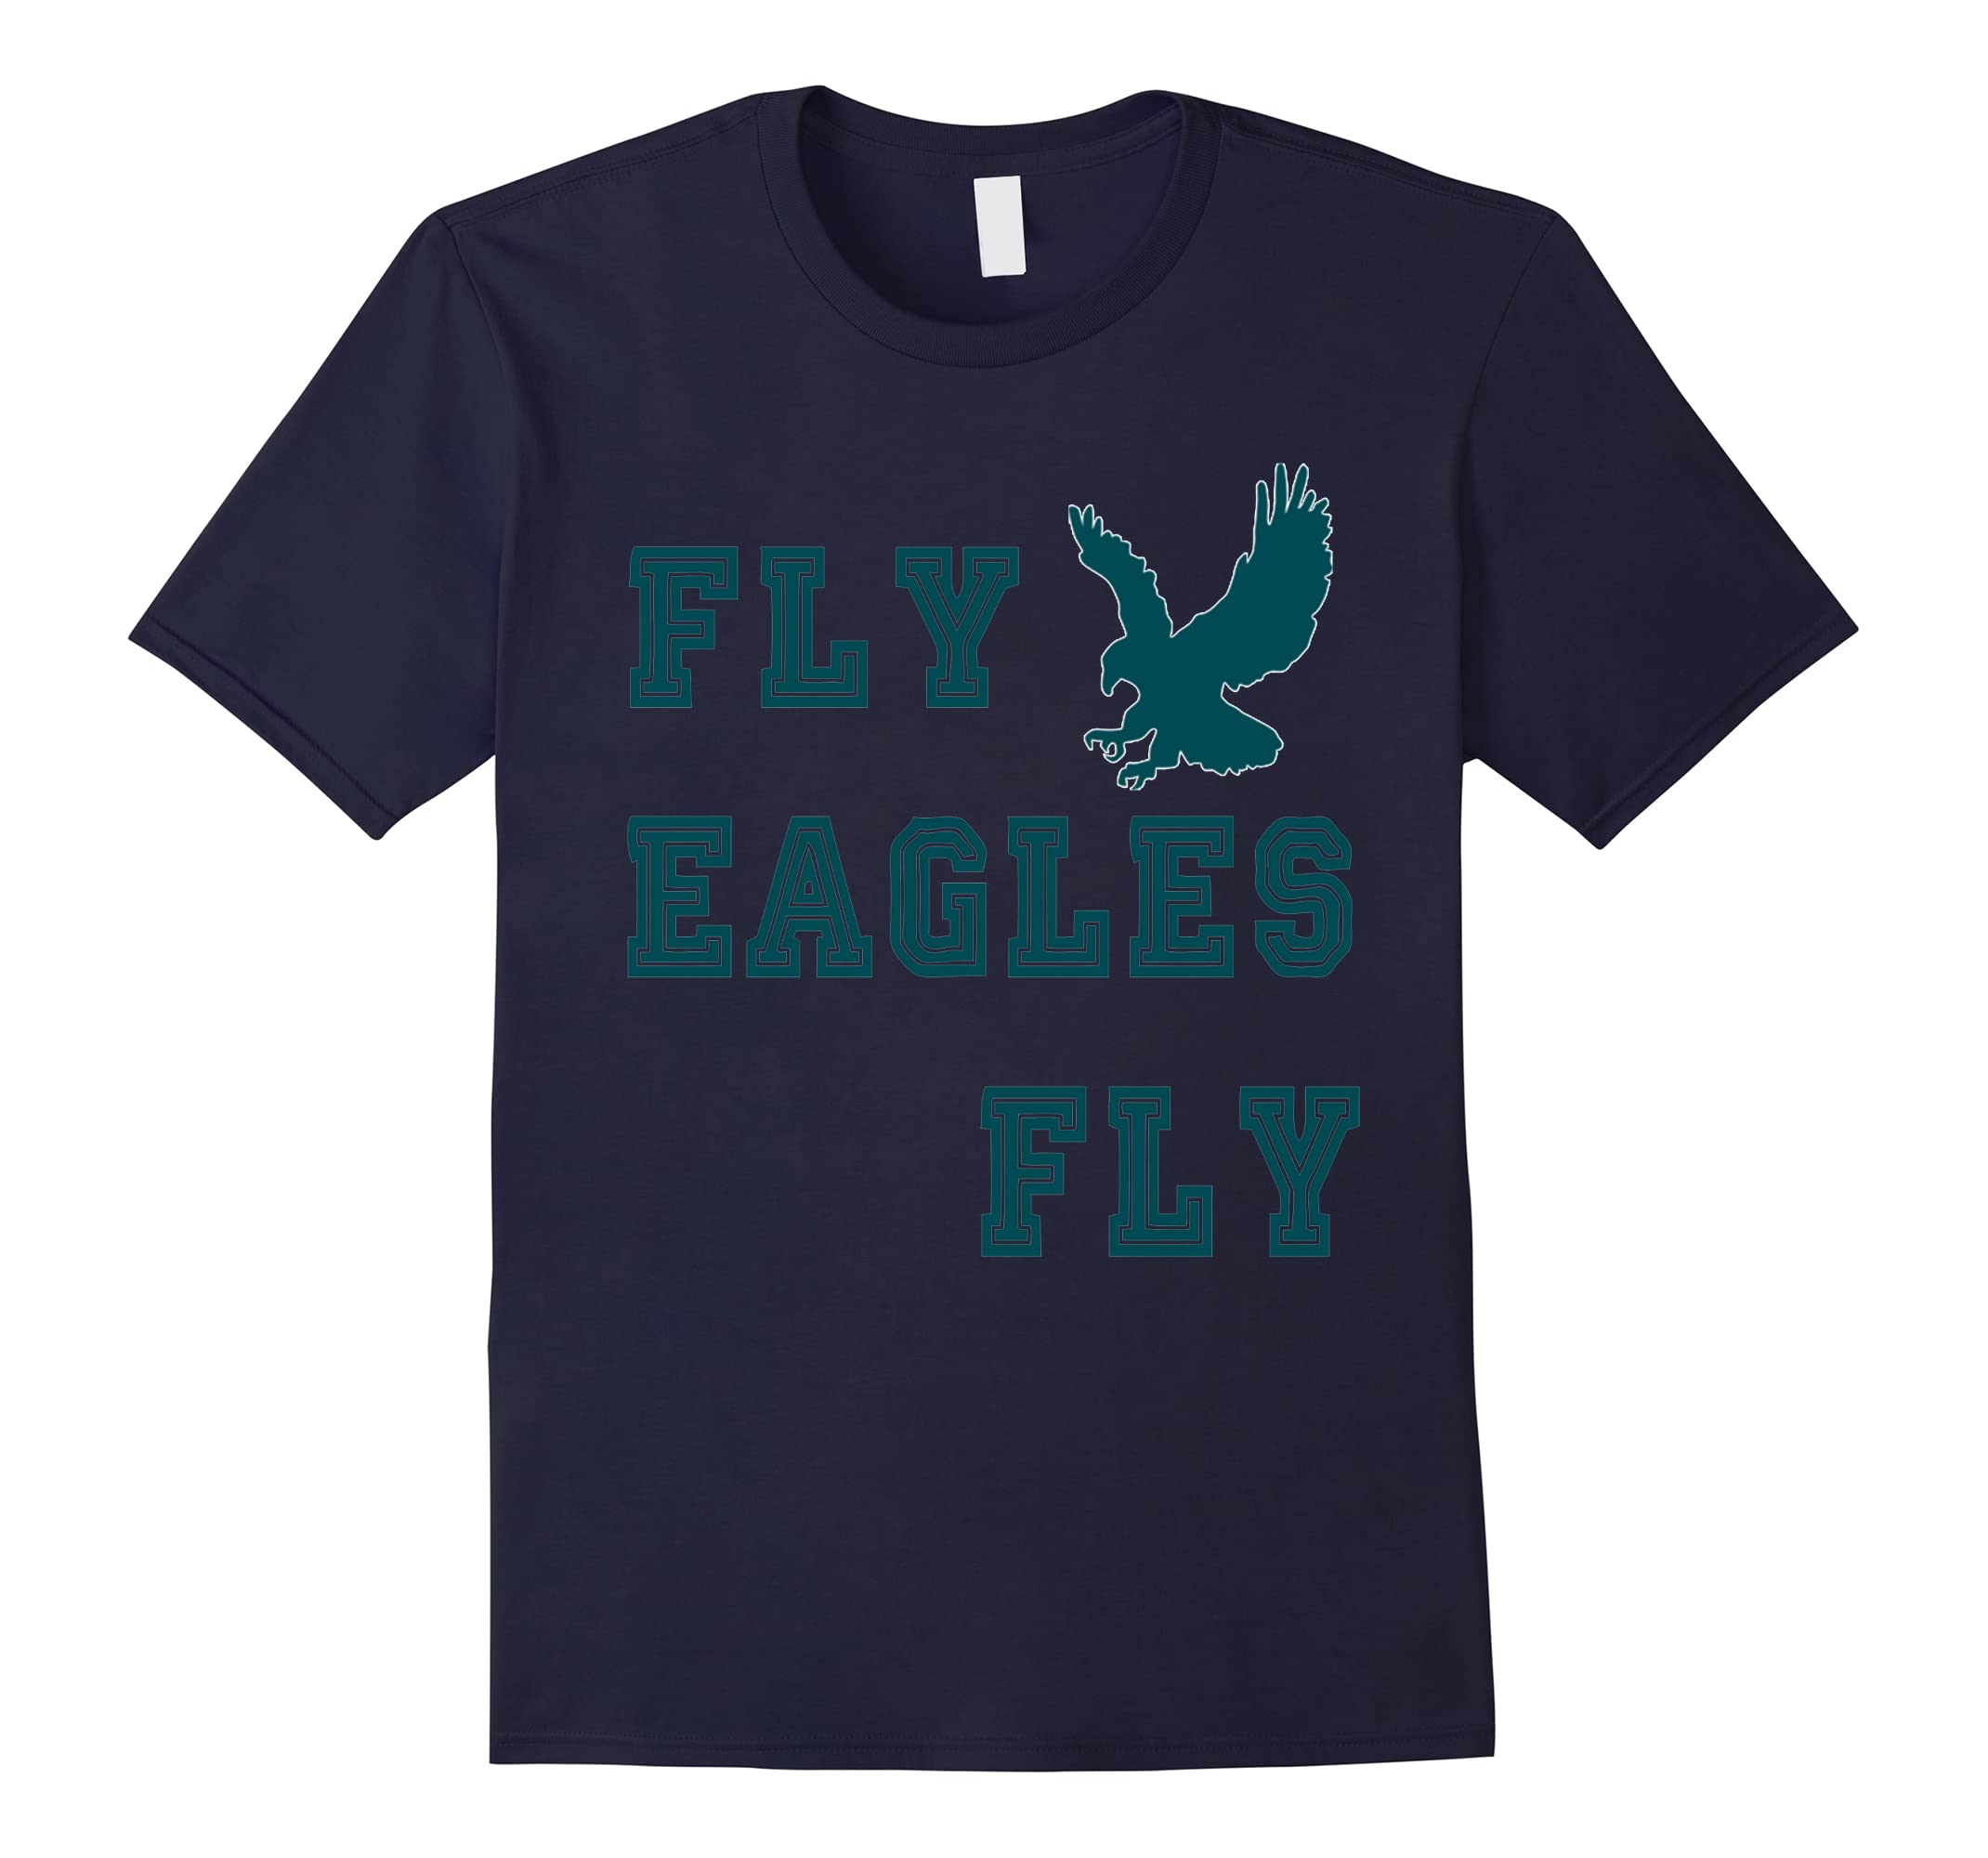 Fly Eagles Fly Shirt | Flying Eagles Tee Shirts-ah my shirt one gift